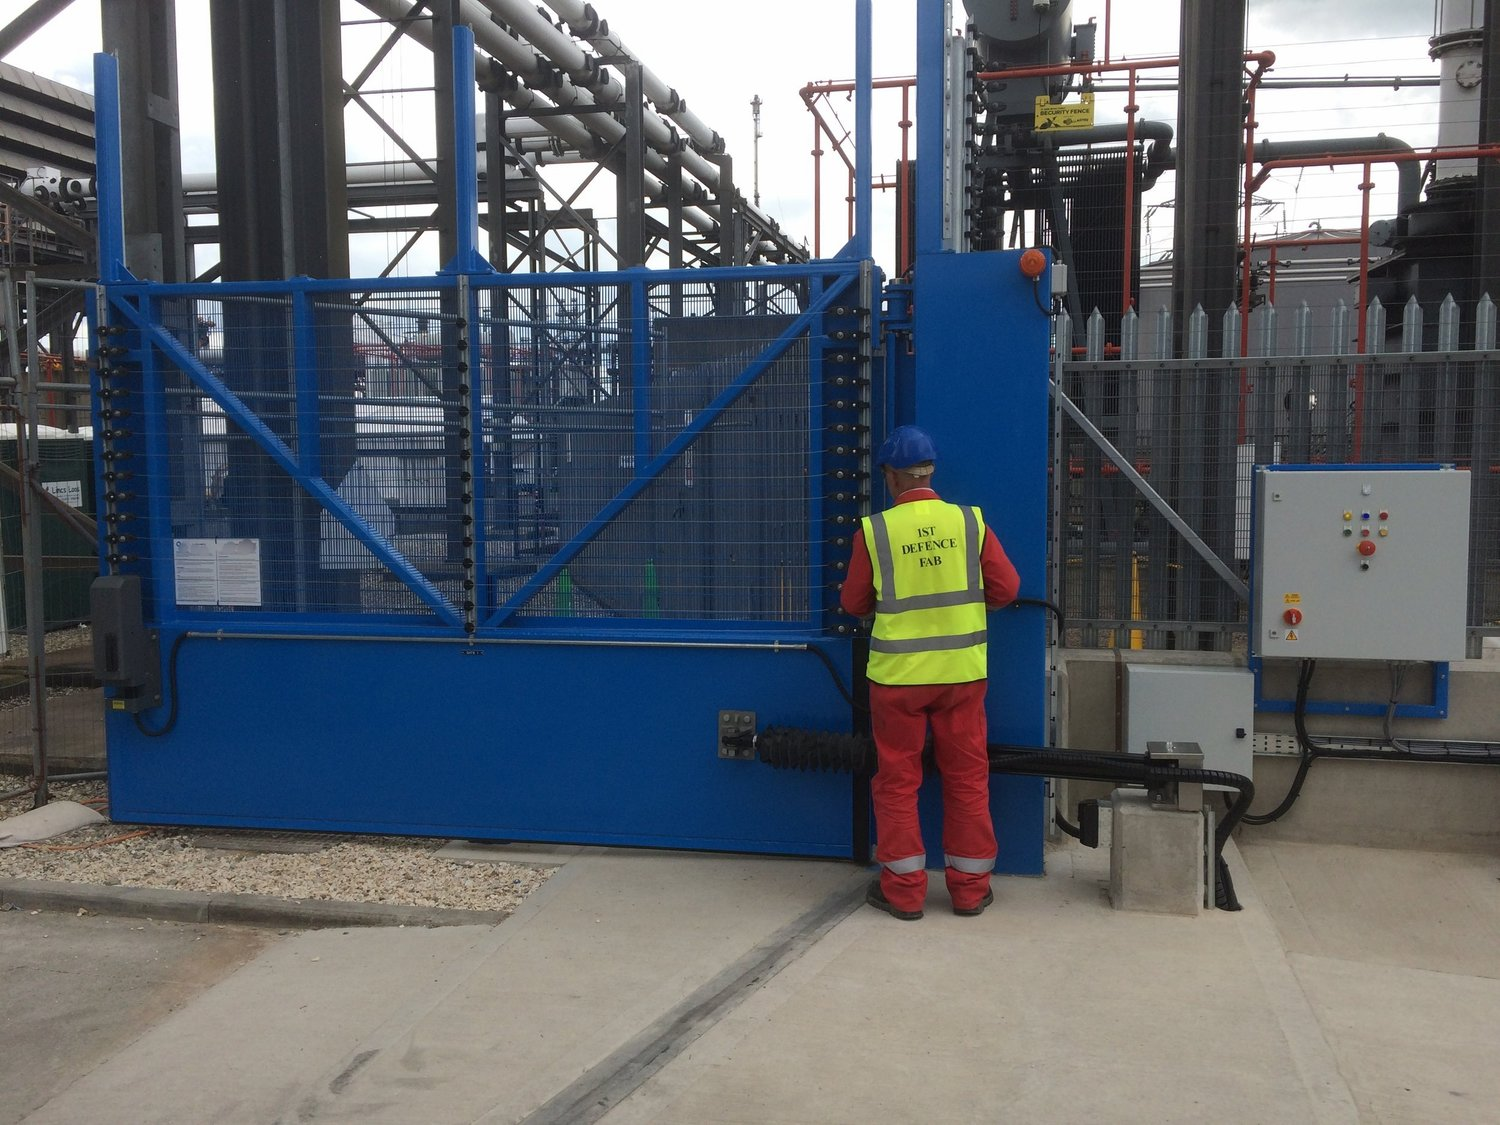 A 1stDefence Fabrications automatic  Hydraulically operated double flood gate with  security fencing. Preventing any break in the electricity  supply with the added protection against more malicious  entry into the compound.